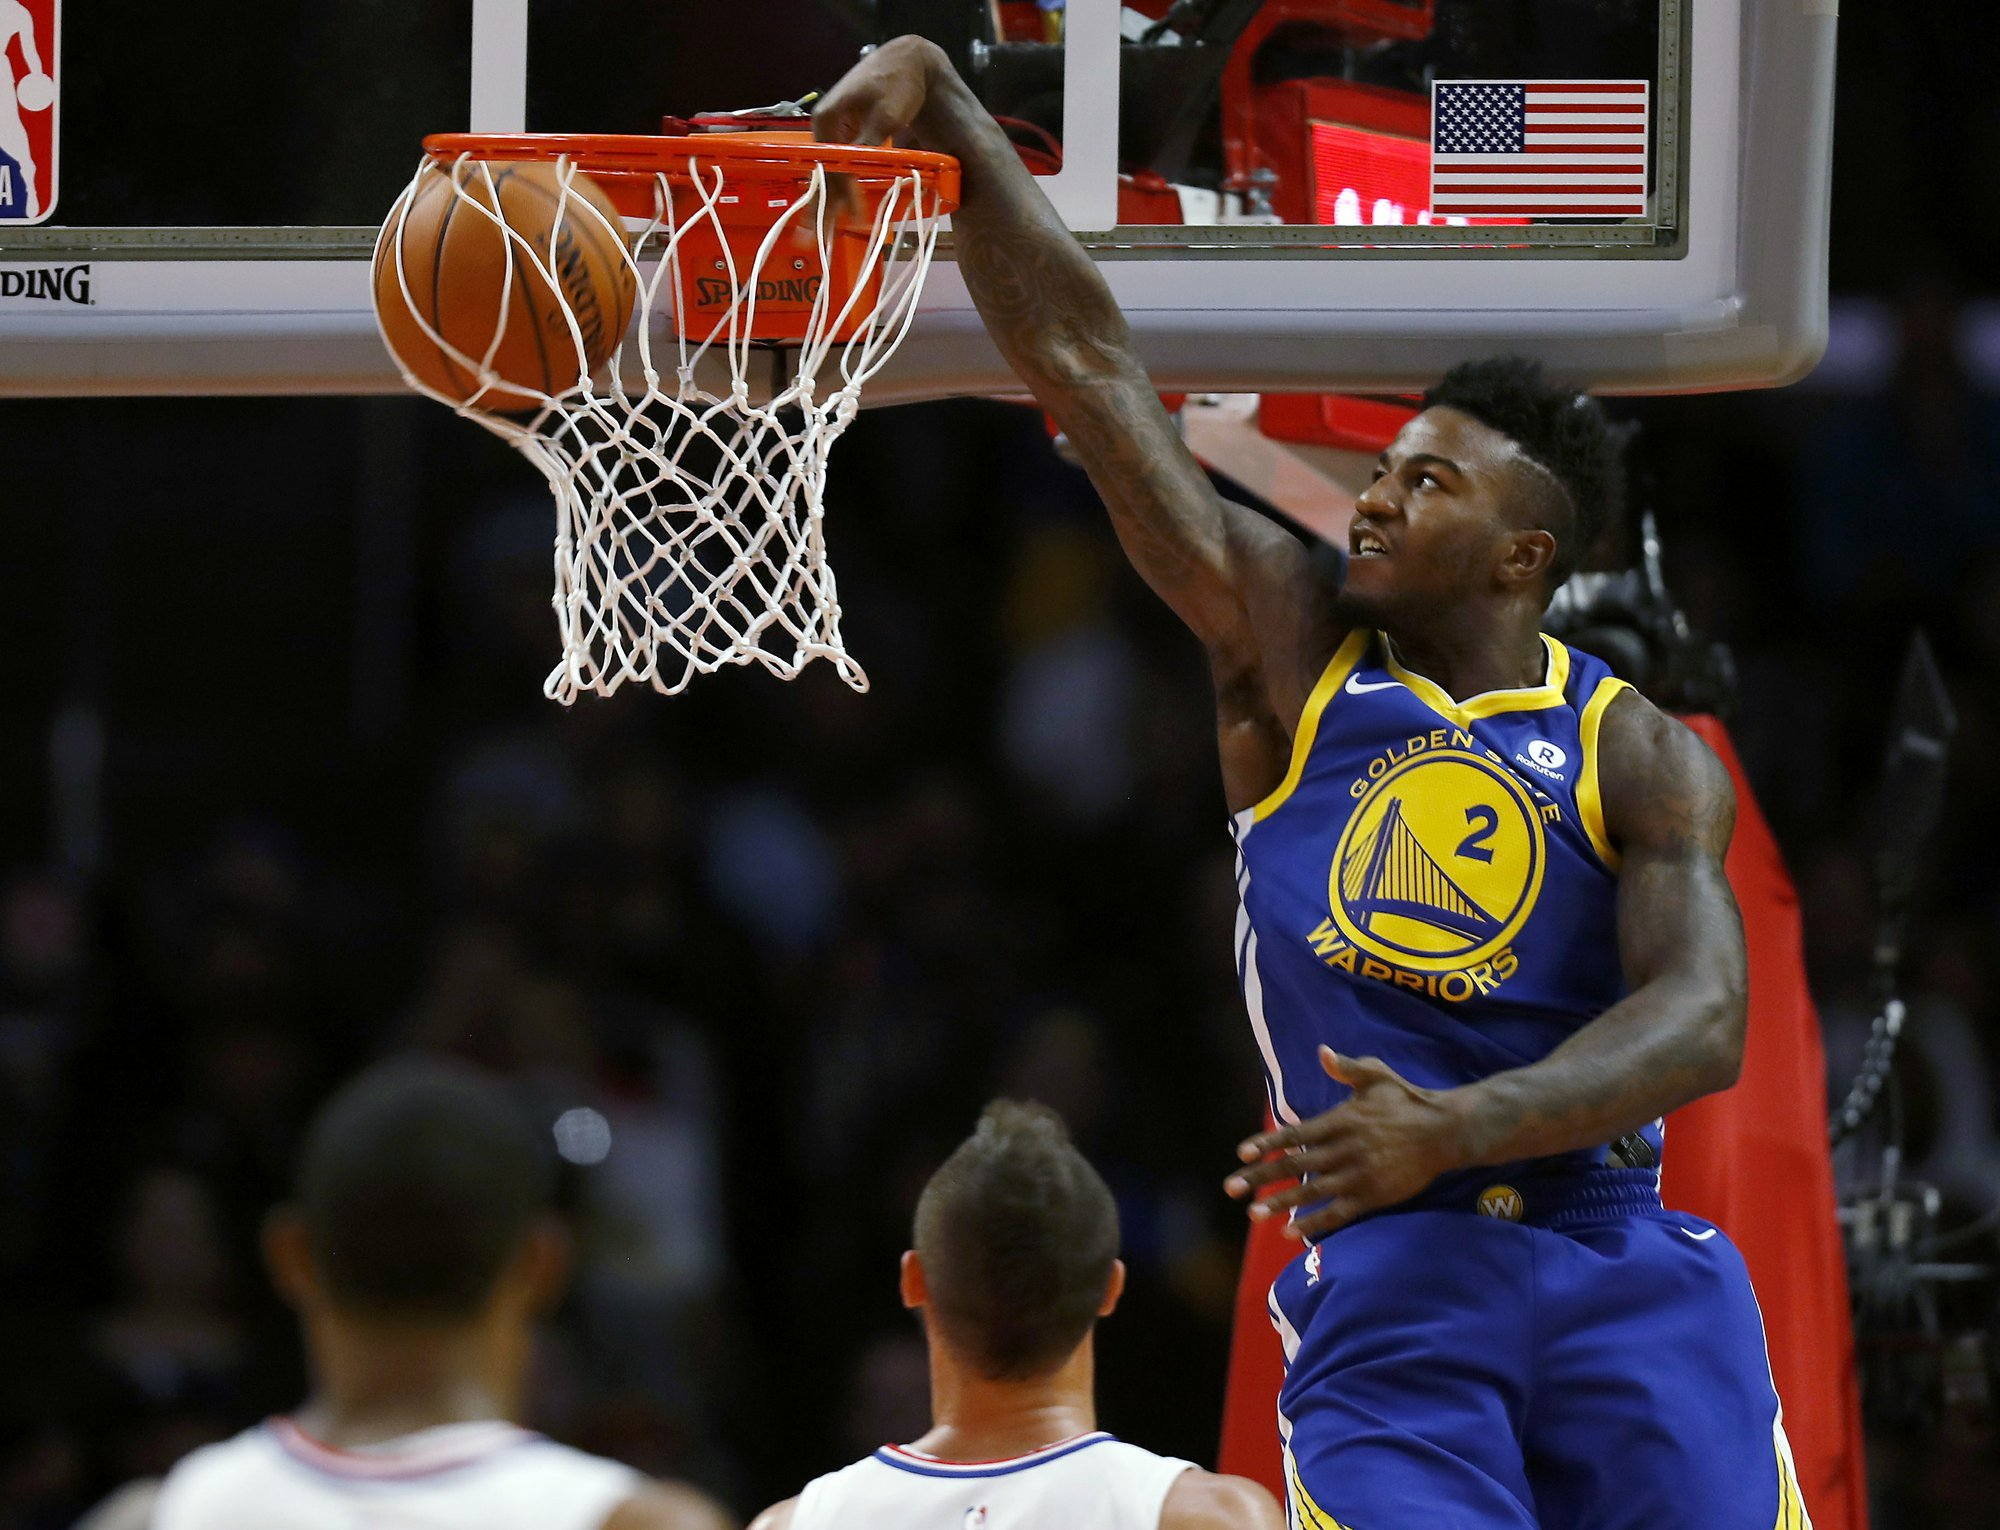 cd9fa2d09b41 Golden State Warriors forward Jordan Bell dunks the basketball during the first  half of an NBA basketball game against the Los Angeles Clippers